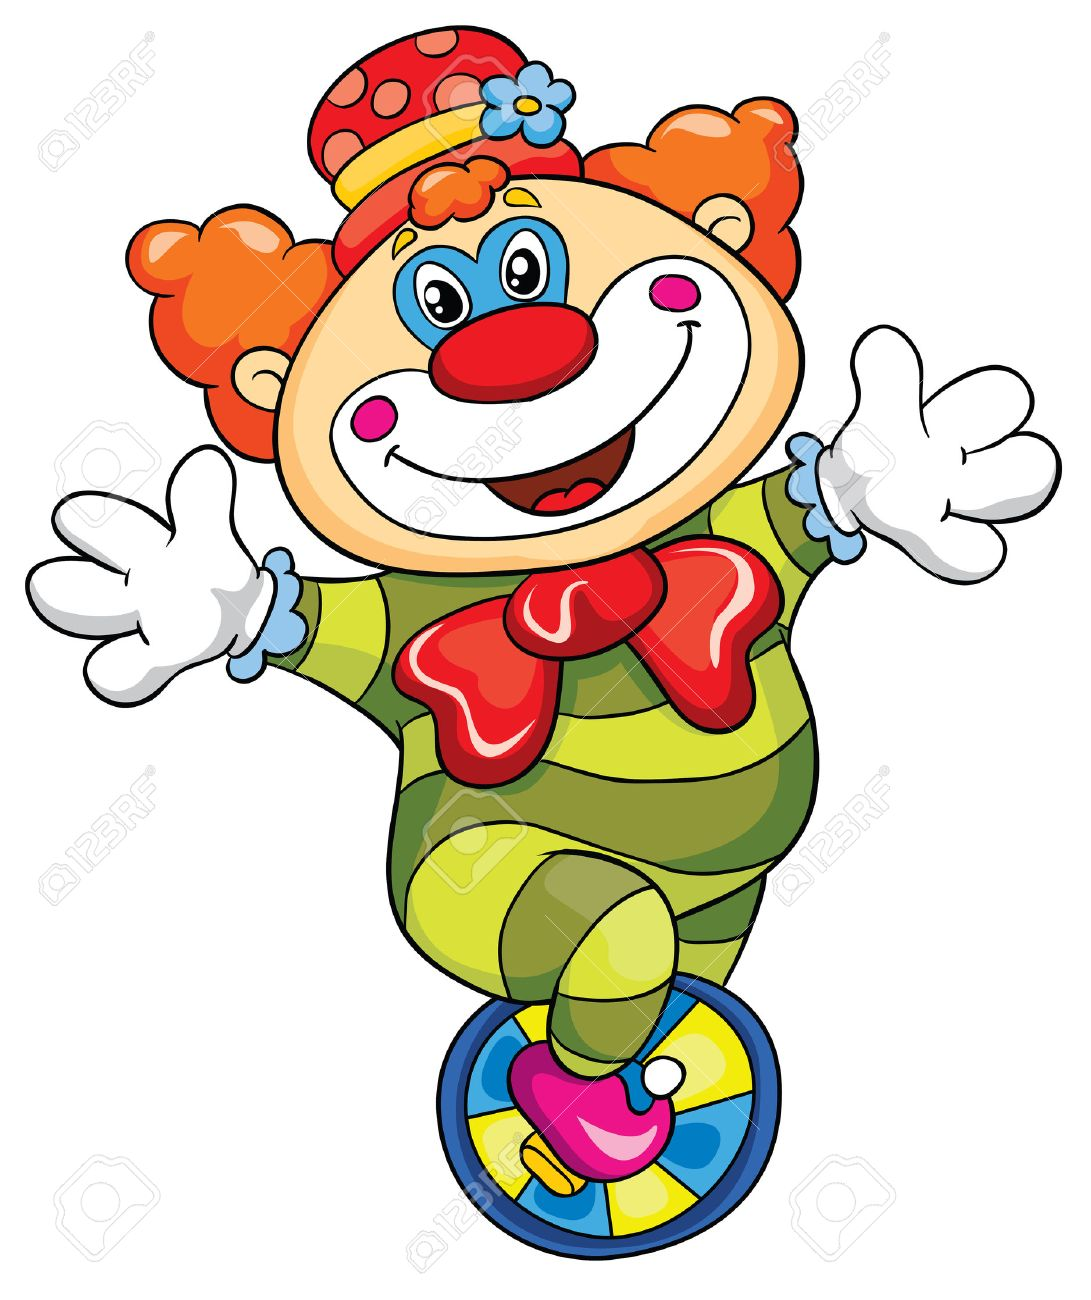 Image Clown funny clown on a white background, vector illustration royalty free